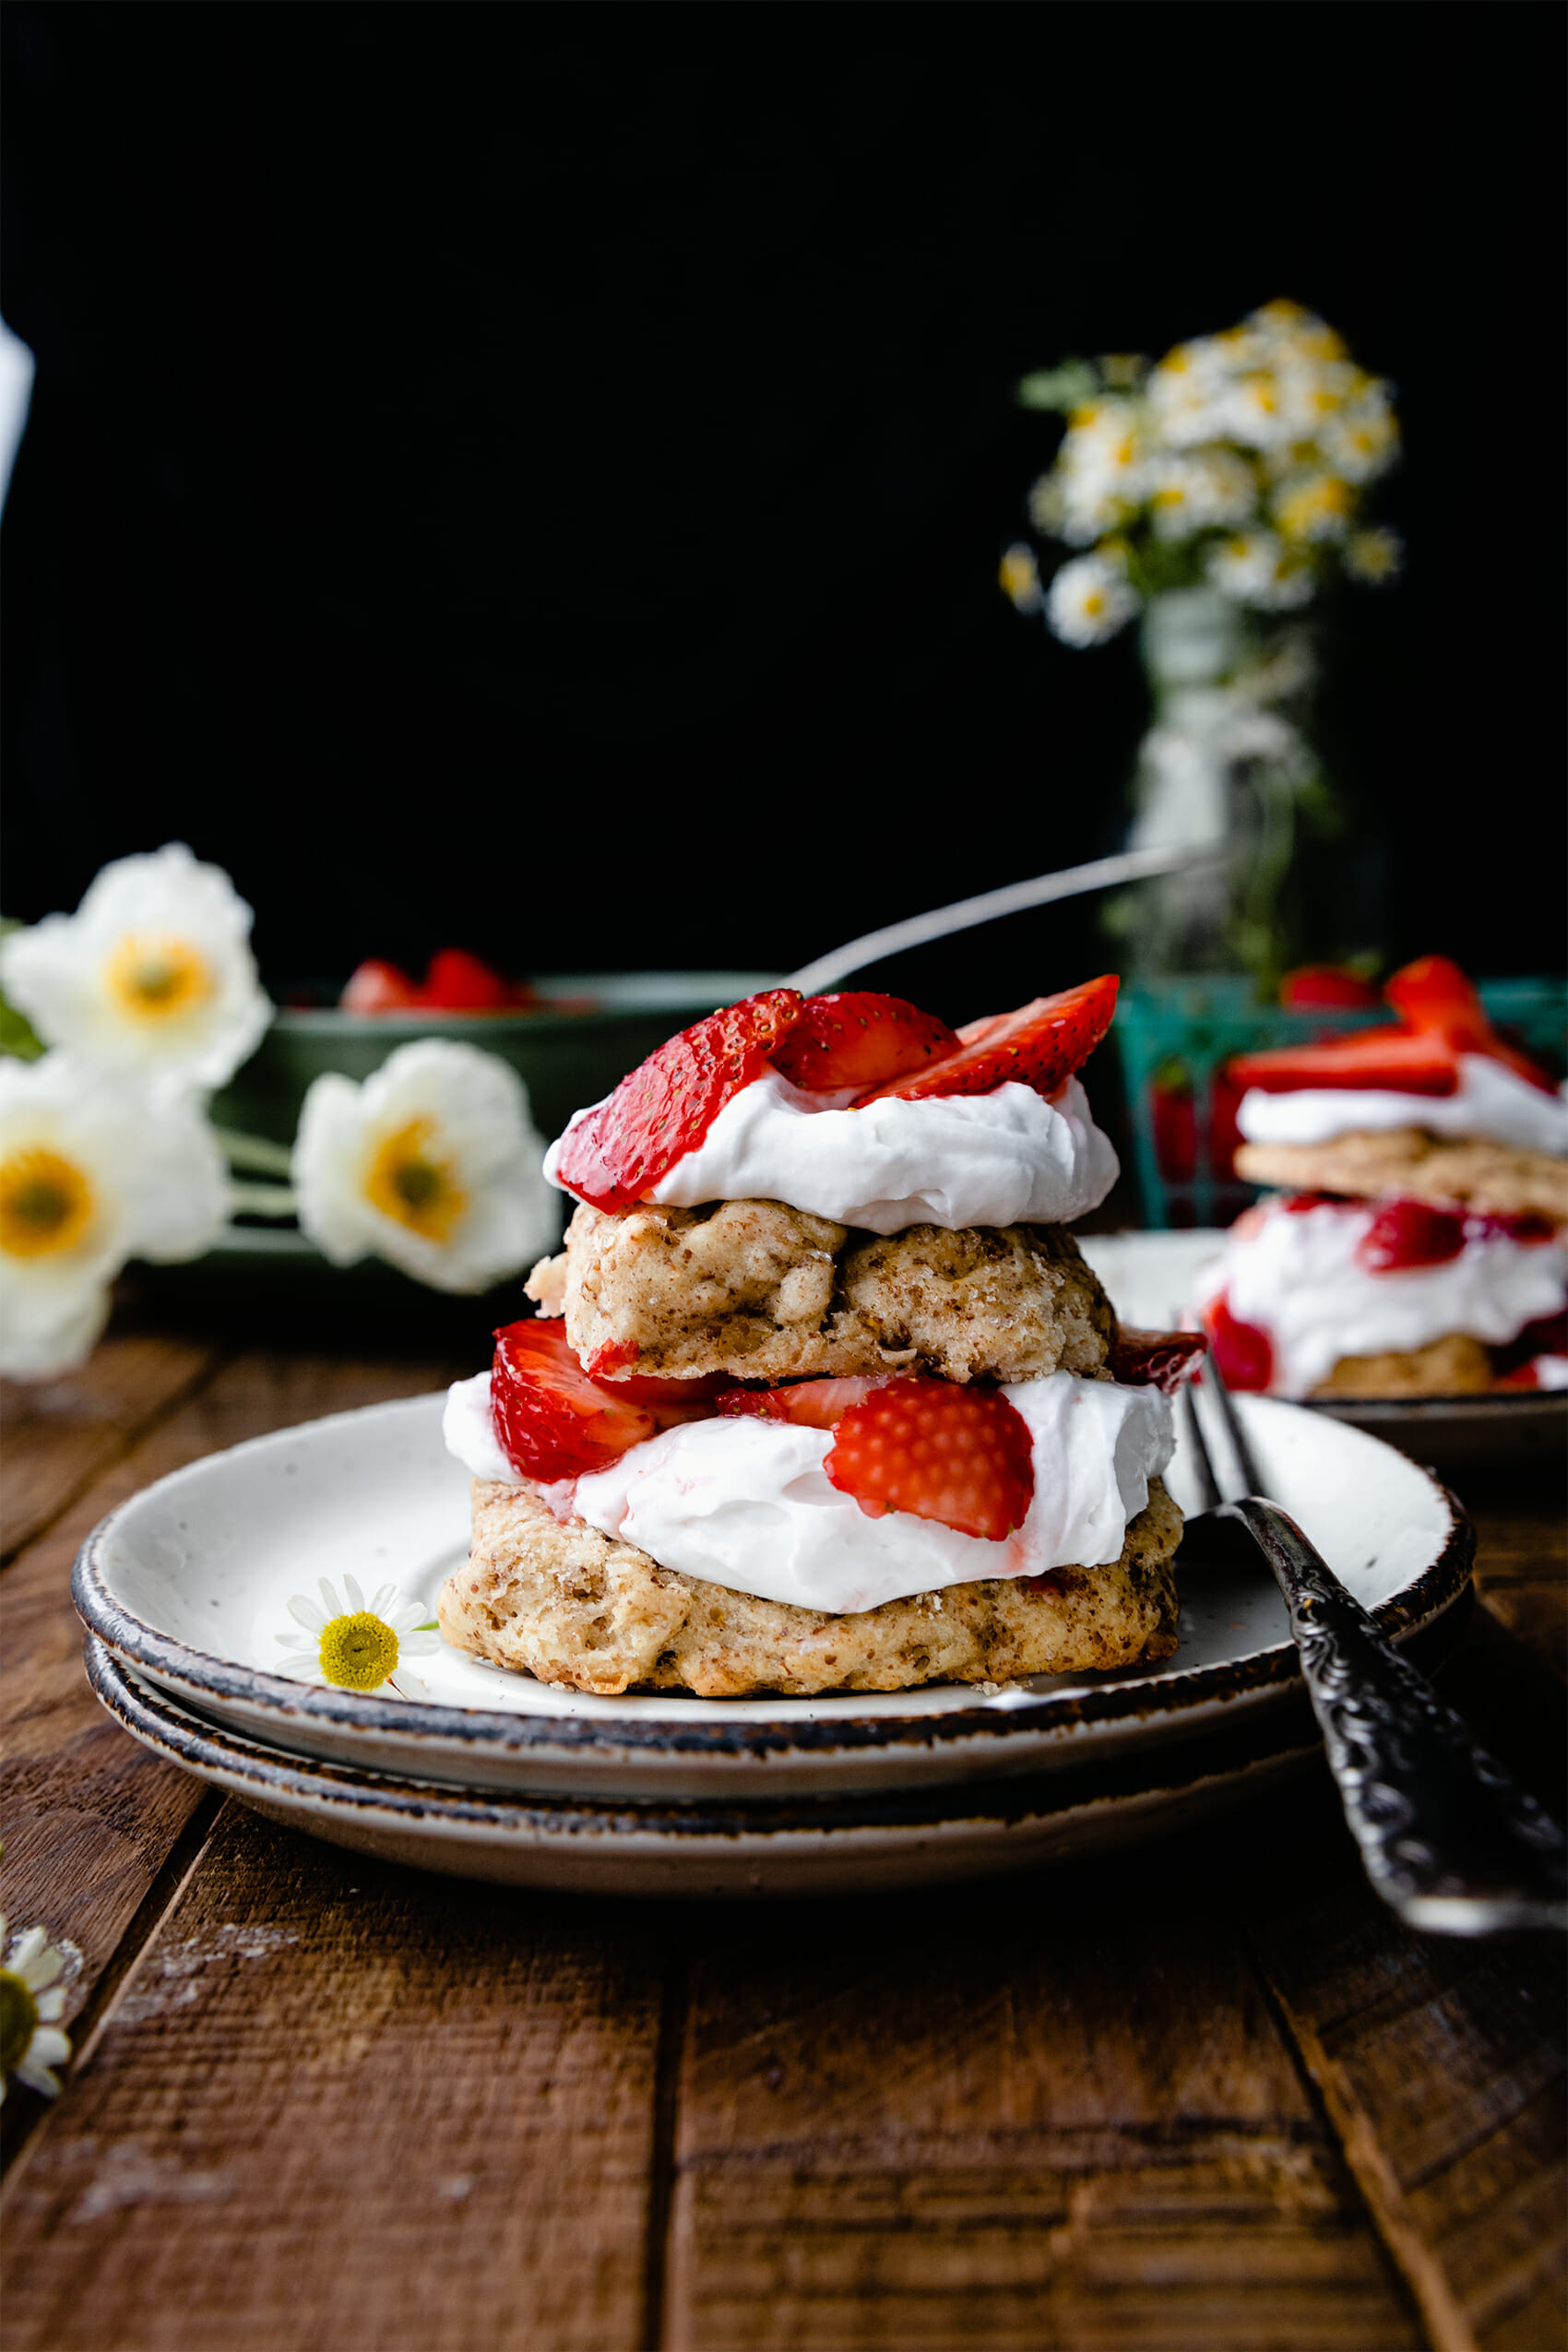 stack of vegan strawberry shortcake with whipped cream on a wooden table